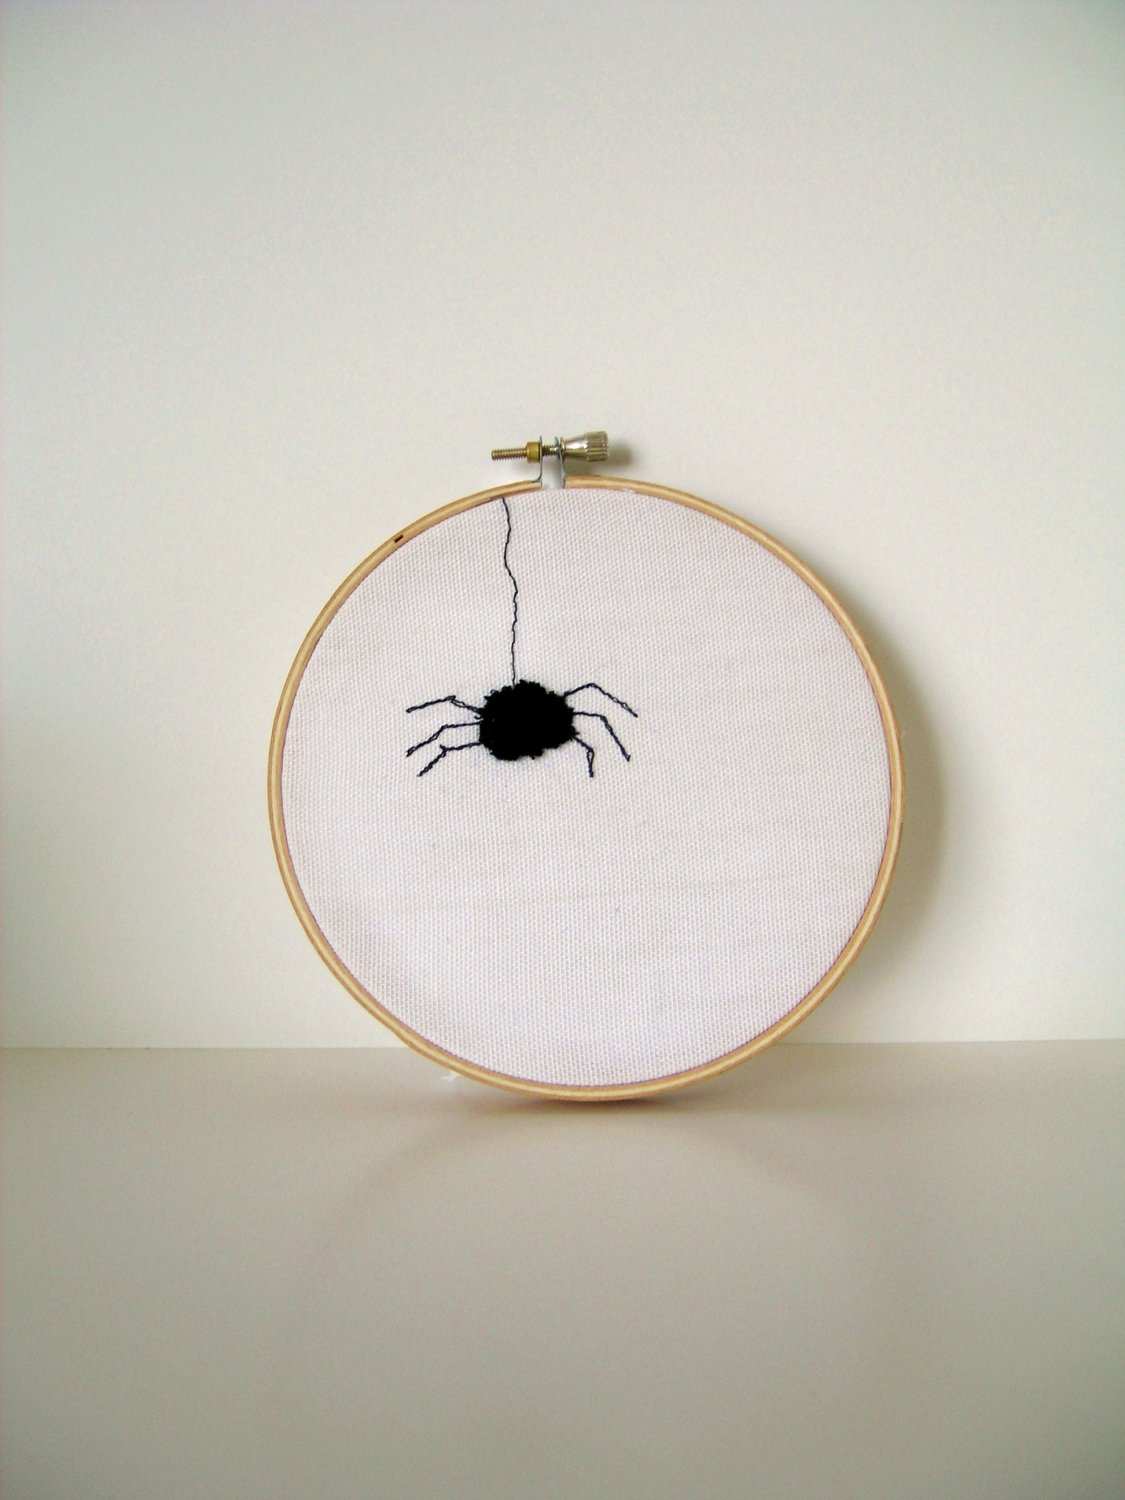 Fuzzy Spider  Needle Punch Embroidery Hoop